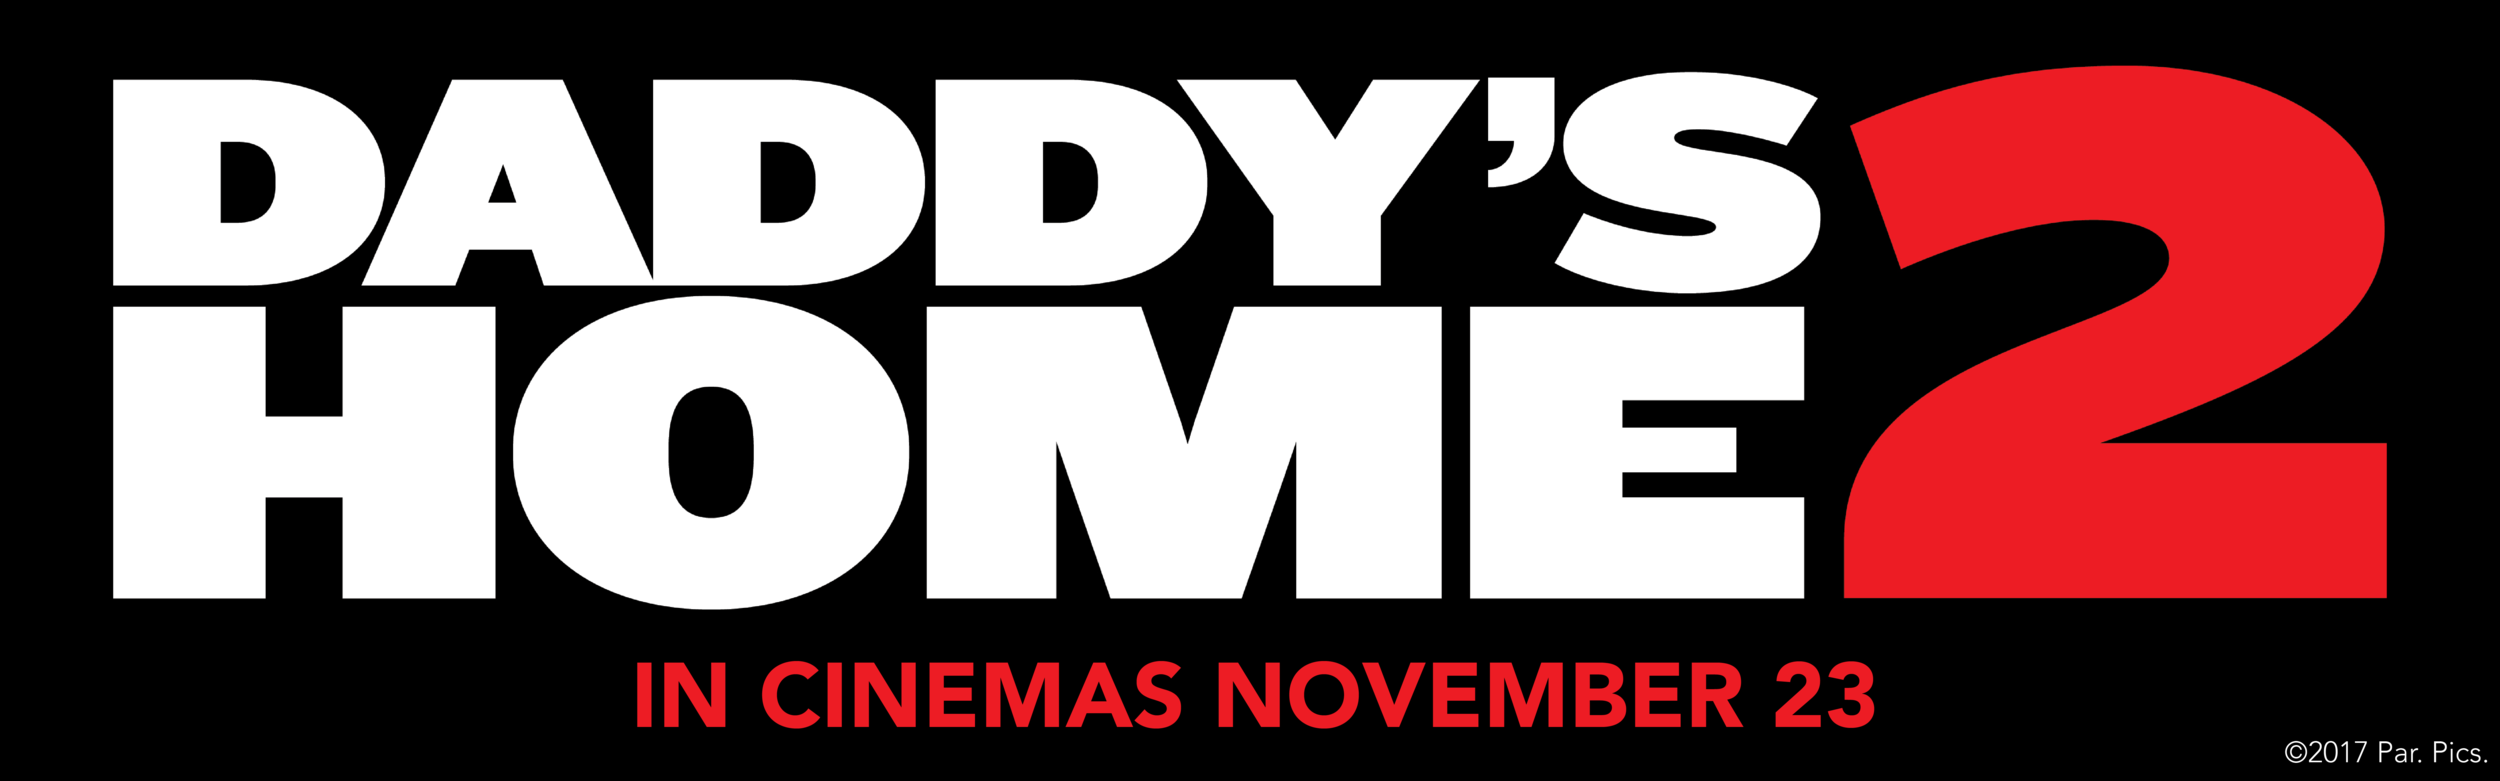 daddy's home web banner V2-01.png